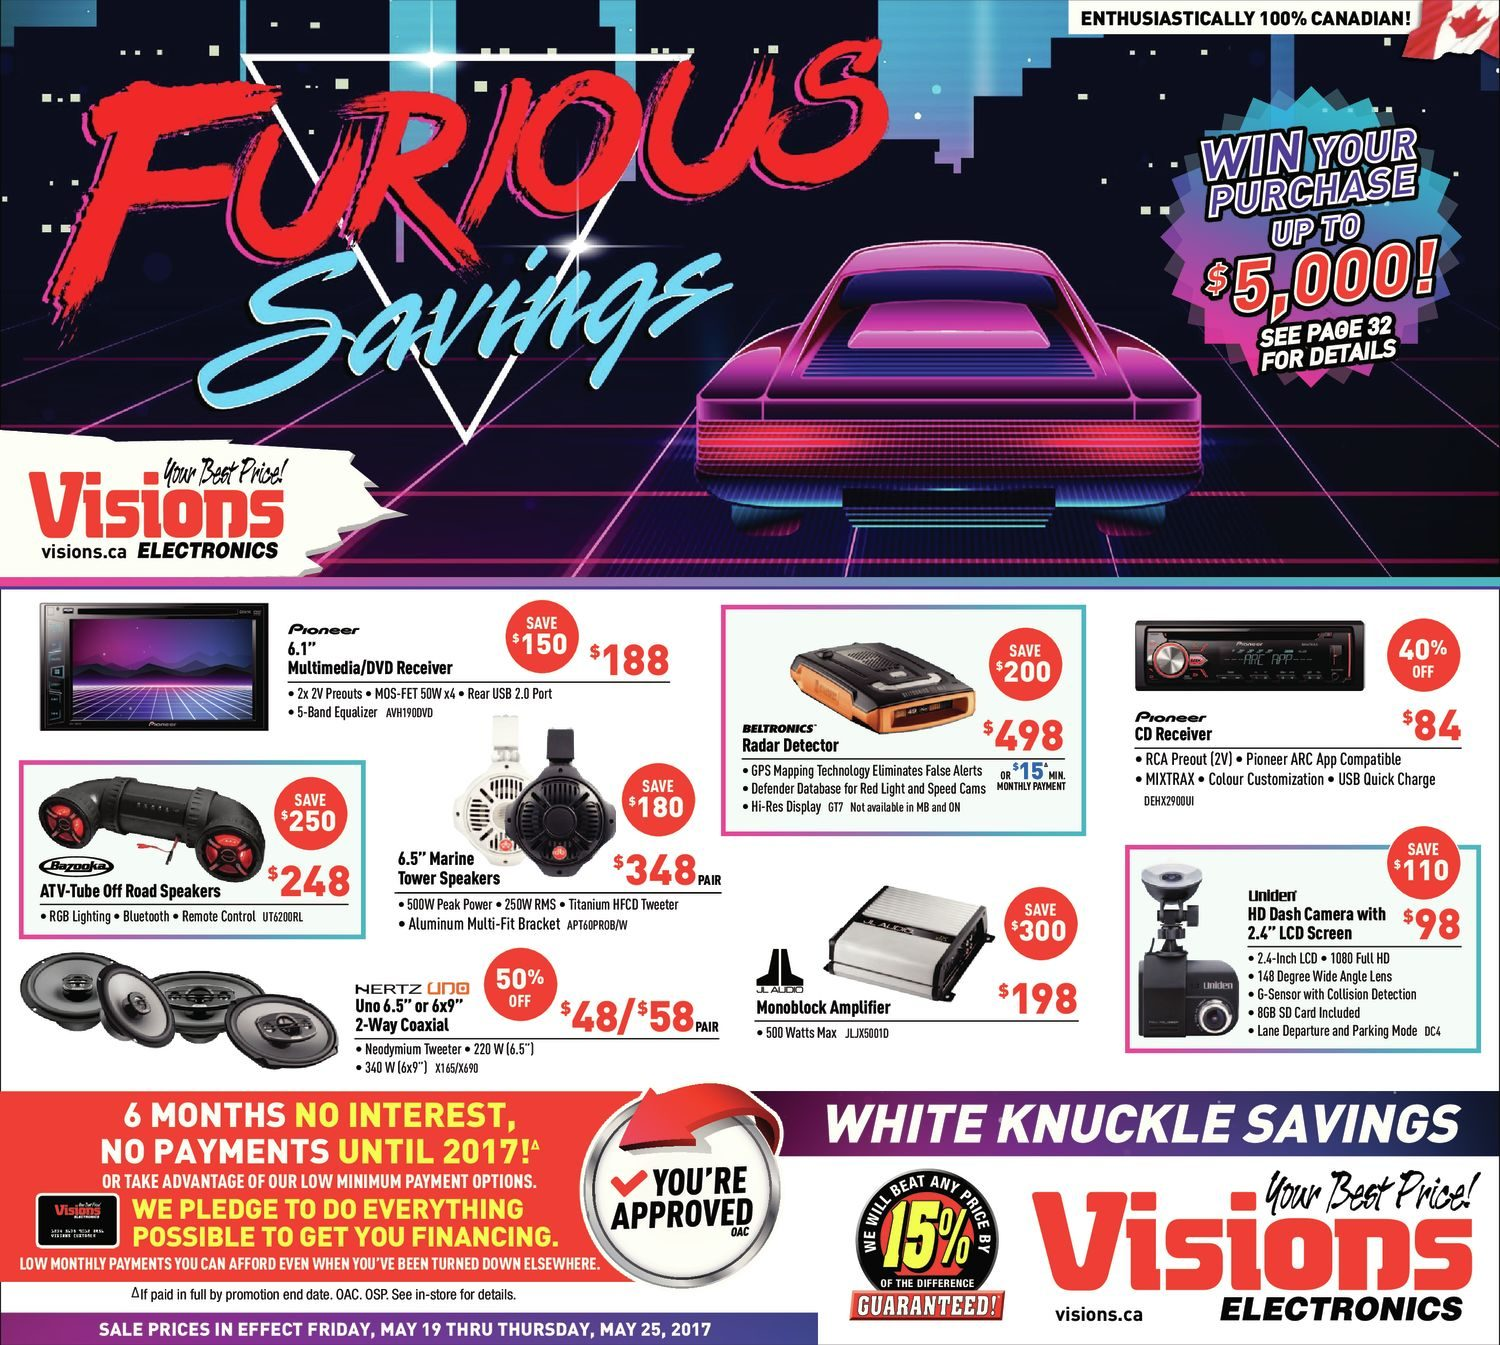 Visions Electronics Weekly Flyer Furious Savings May 19 Tweeter Vx 41 Ht 25